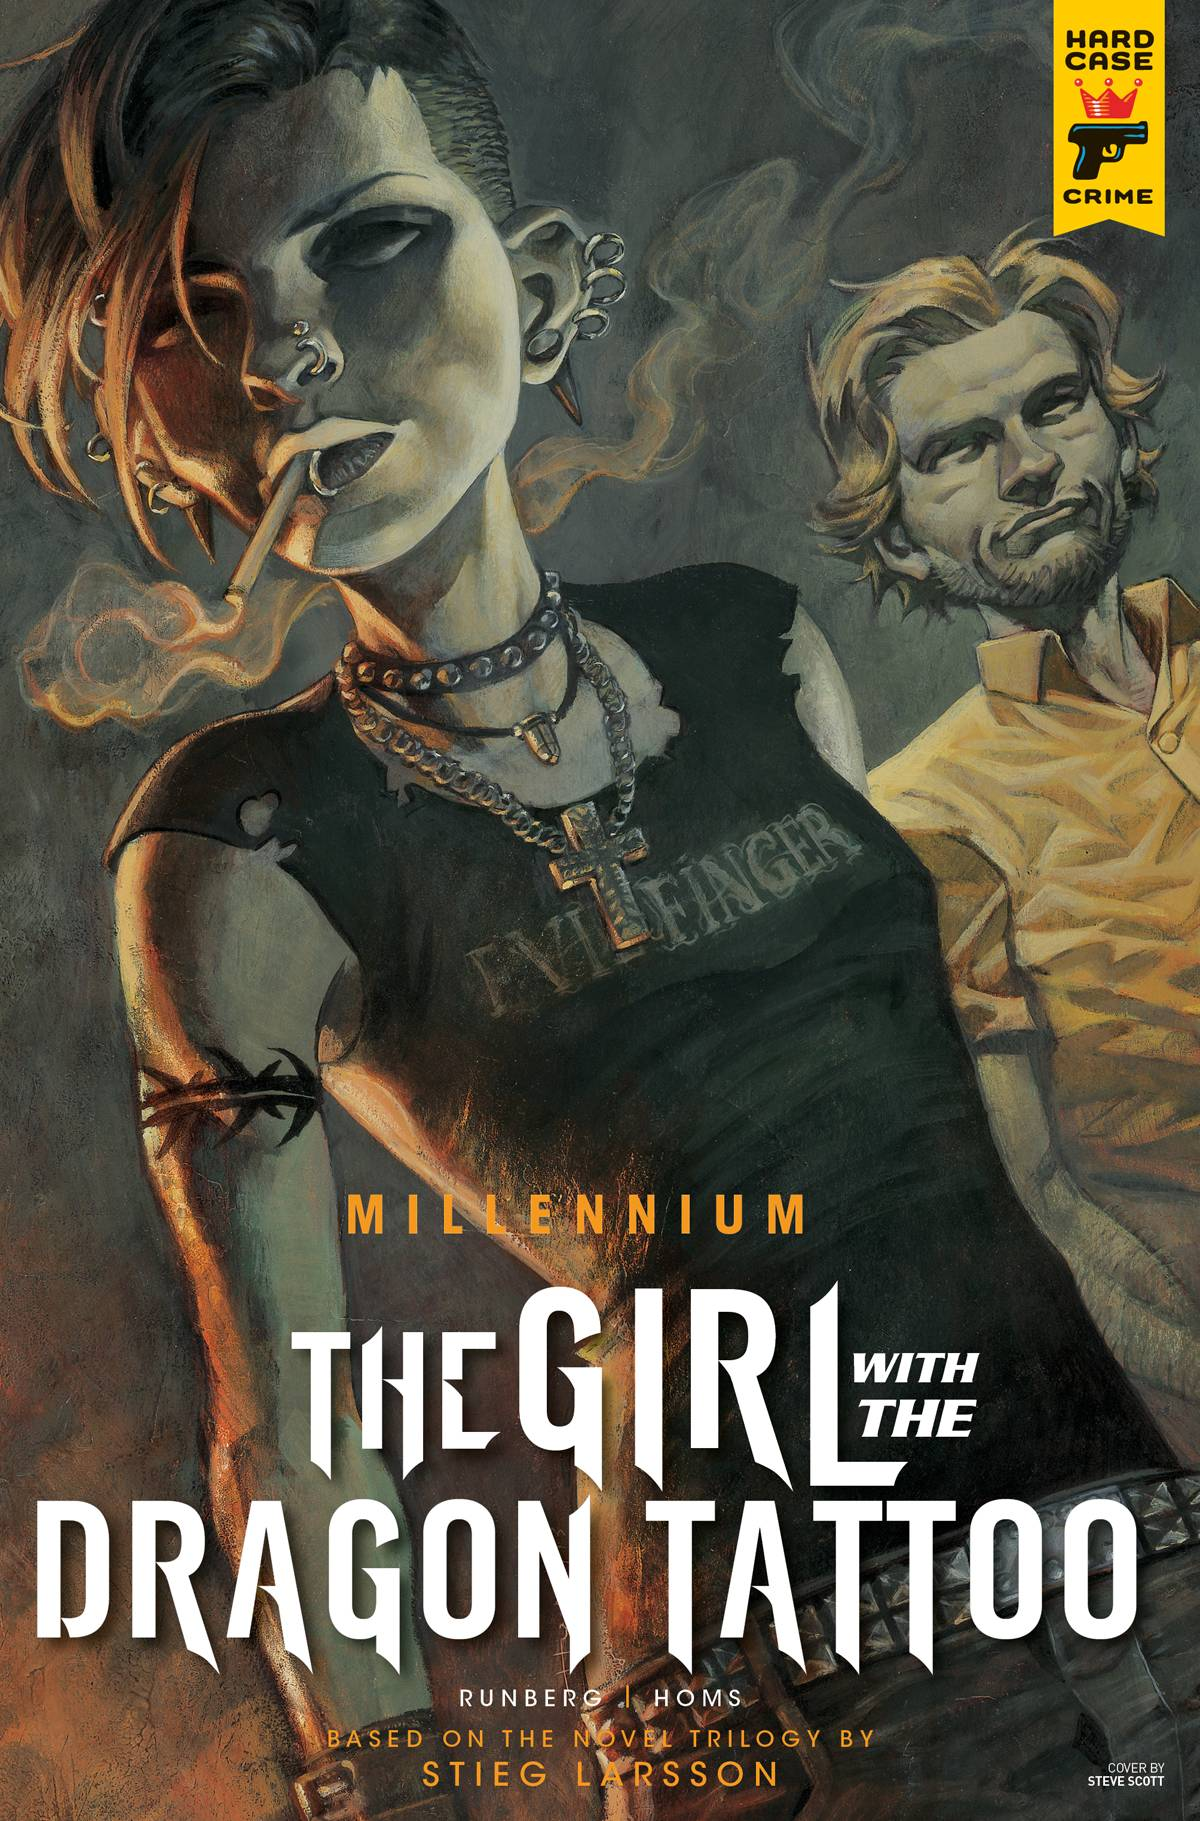 MILLENNIUM--THE GIRL WITH THE DRAGON TATTOO#2